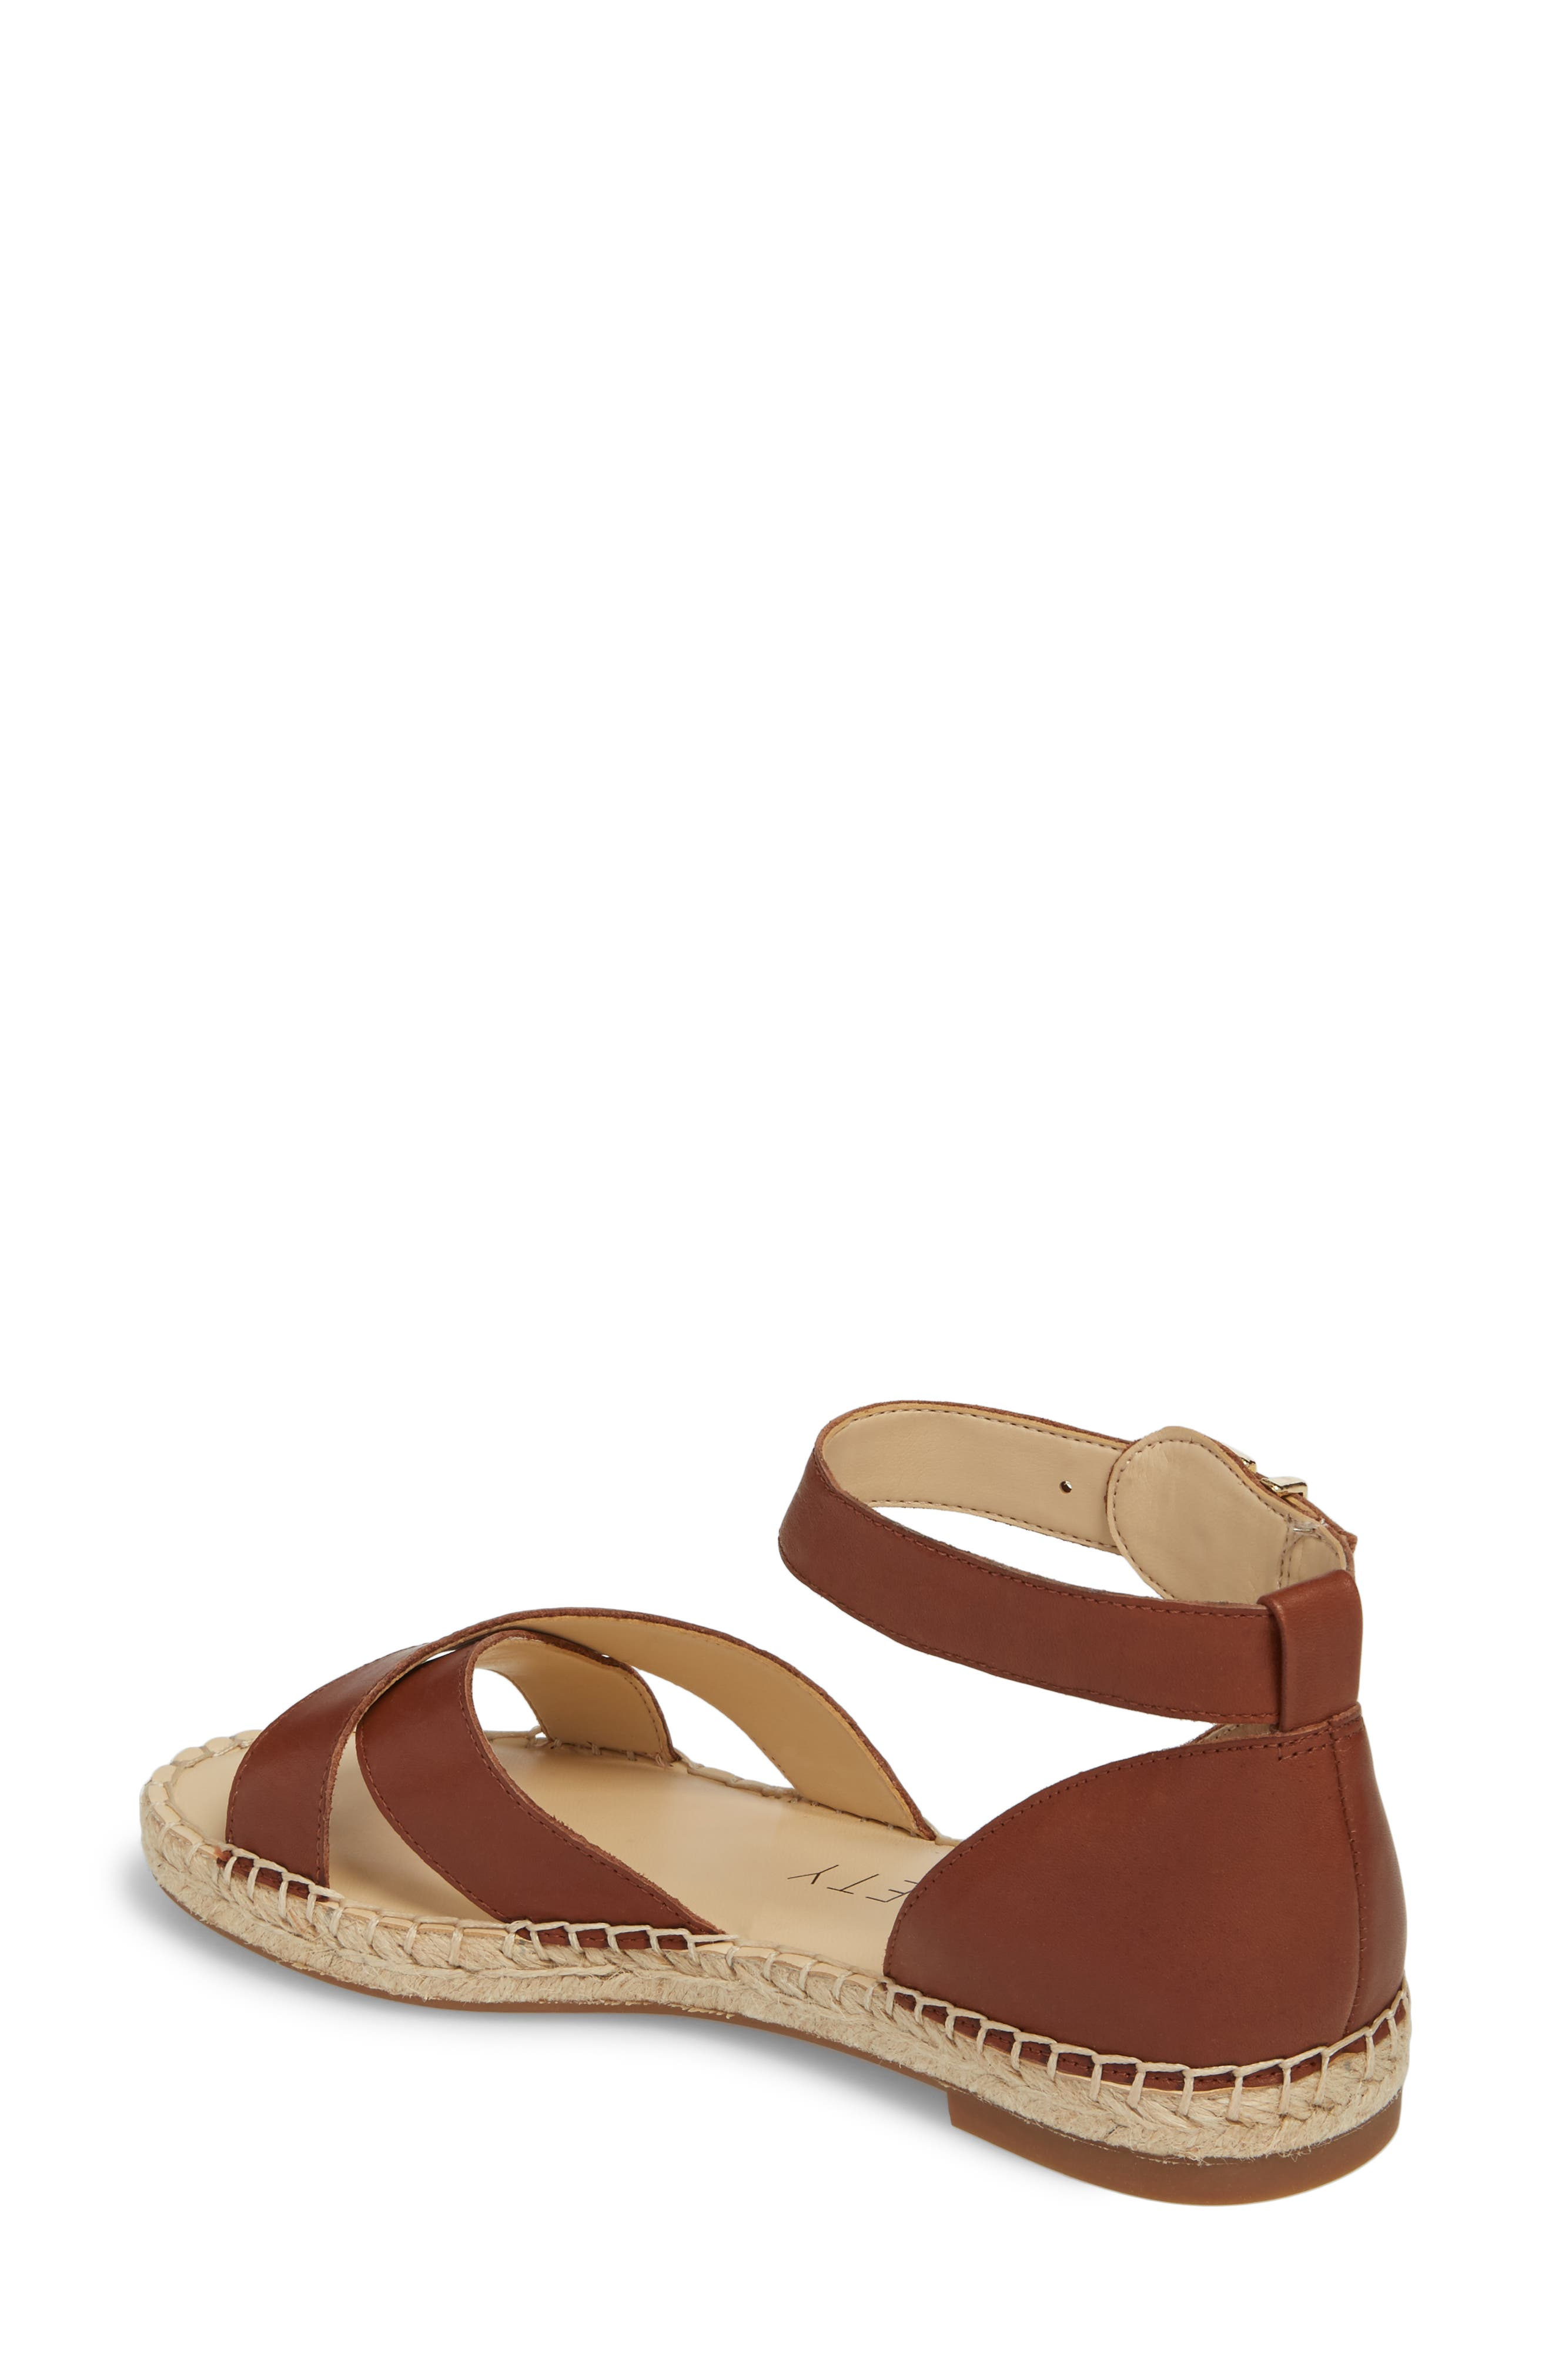 Saundra Espadrille Sandal,                             Alternate thumbnail 7, color,